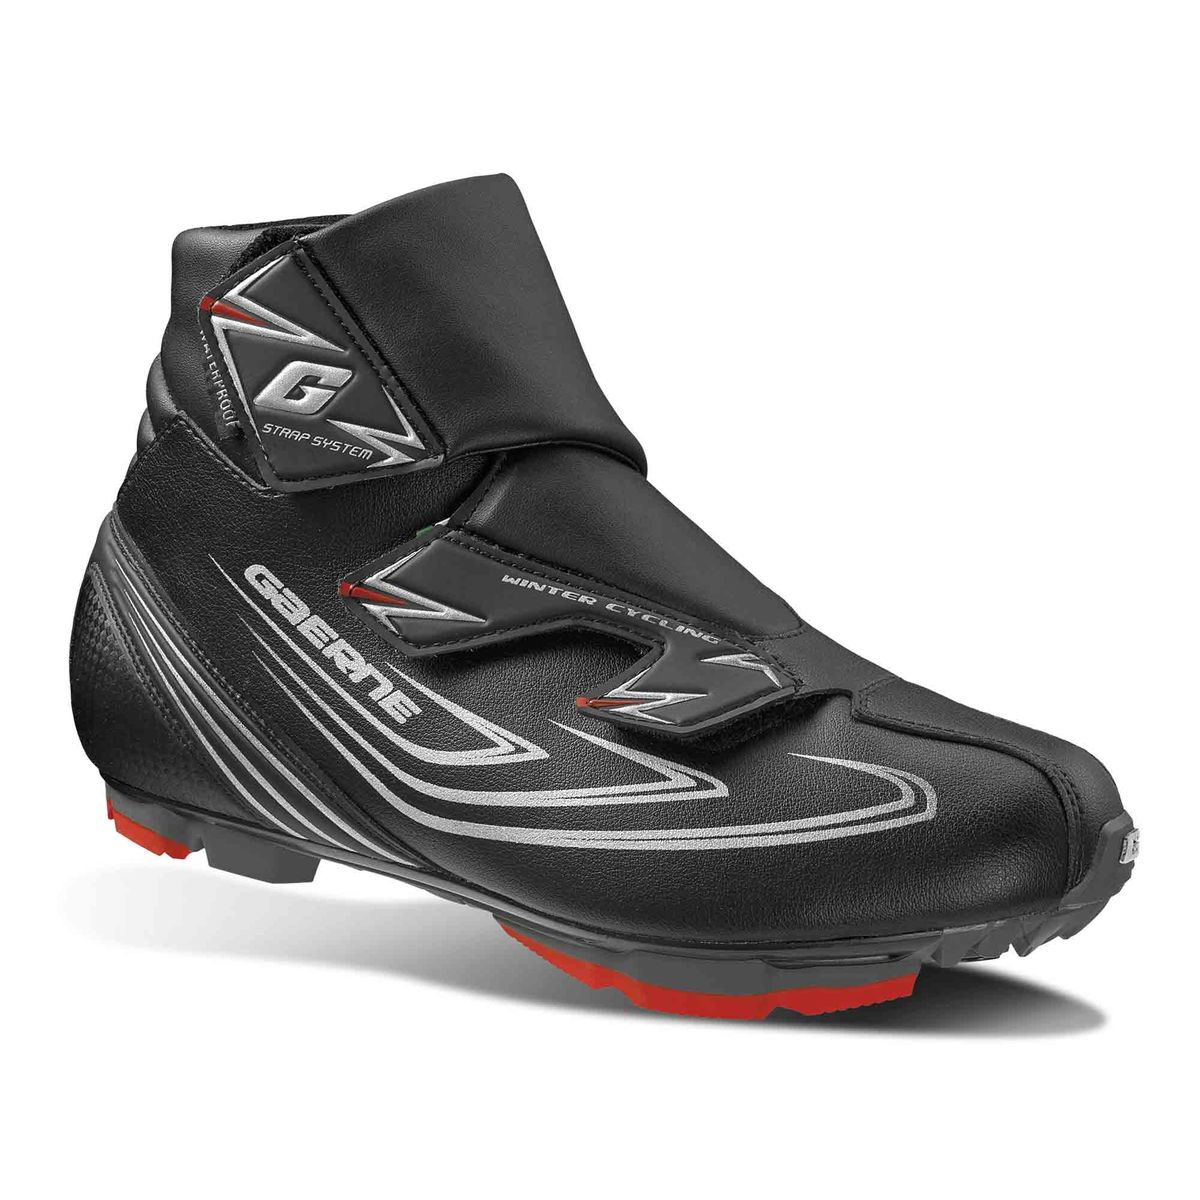 G.ARTIX winter MTB shoes